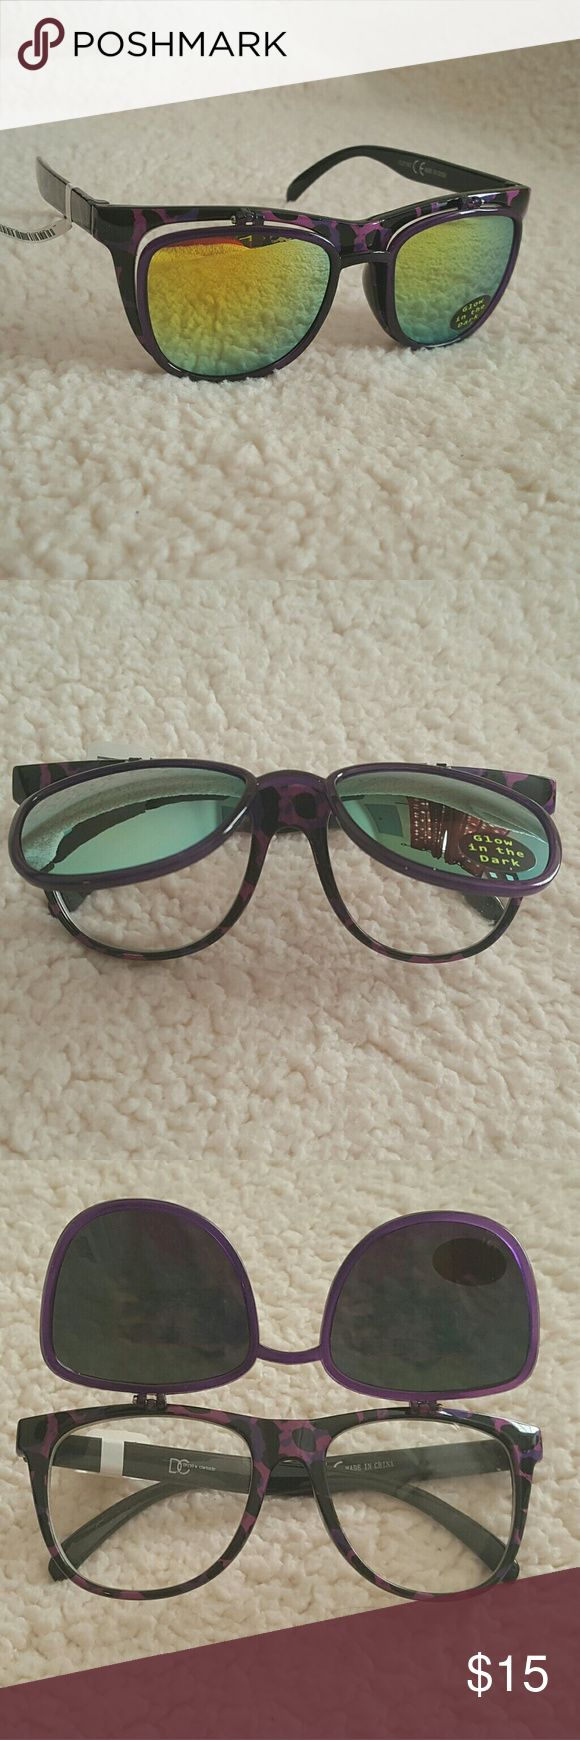 NEW Purple Leopard Sunglasses These awesome pair of sunglasses feature flip lenses! They are a purple leopard pattern with yellow reflecting tint. Flip them up to reveal clear shades! They also glow in the dark. These make for a great pair of party shades! Bought at Hot Topic. Brand new with tags.  **Take a peek at my other listings. Bundle for extra savings! Thanks for looking!**  --------------- Summer Spring Sunnies Reflectors Hot Topic Accessories Sunglasses